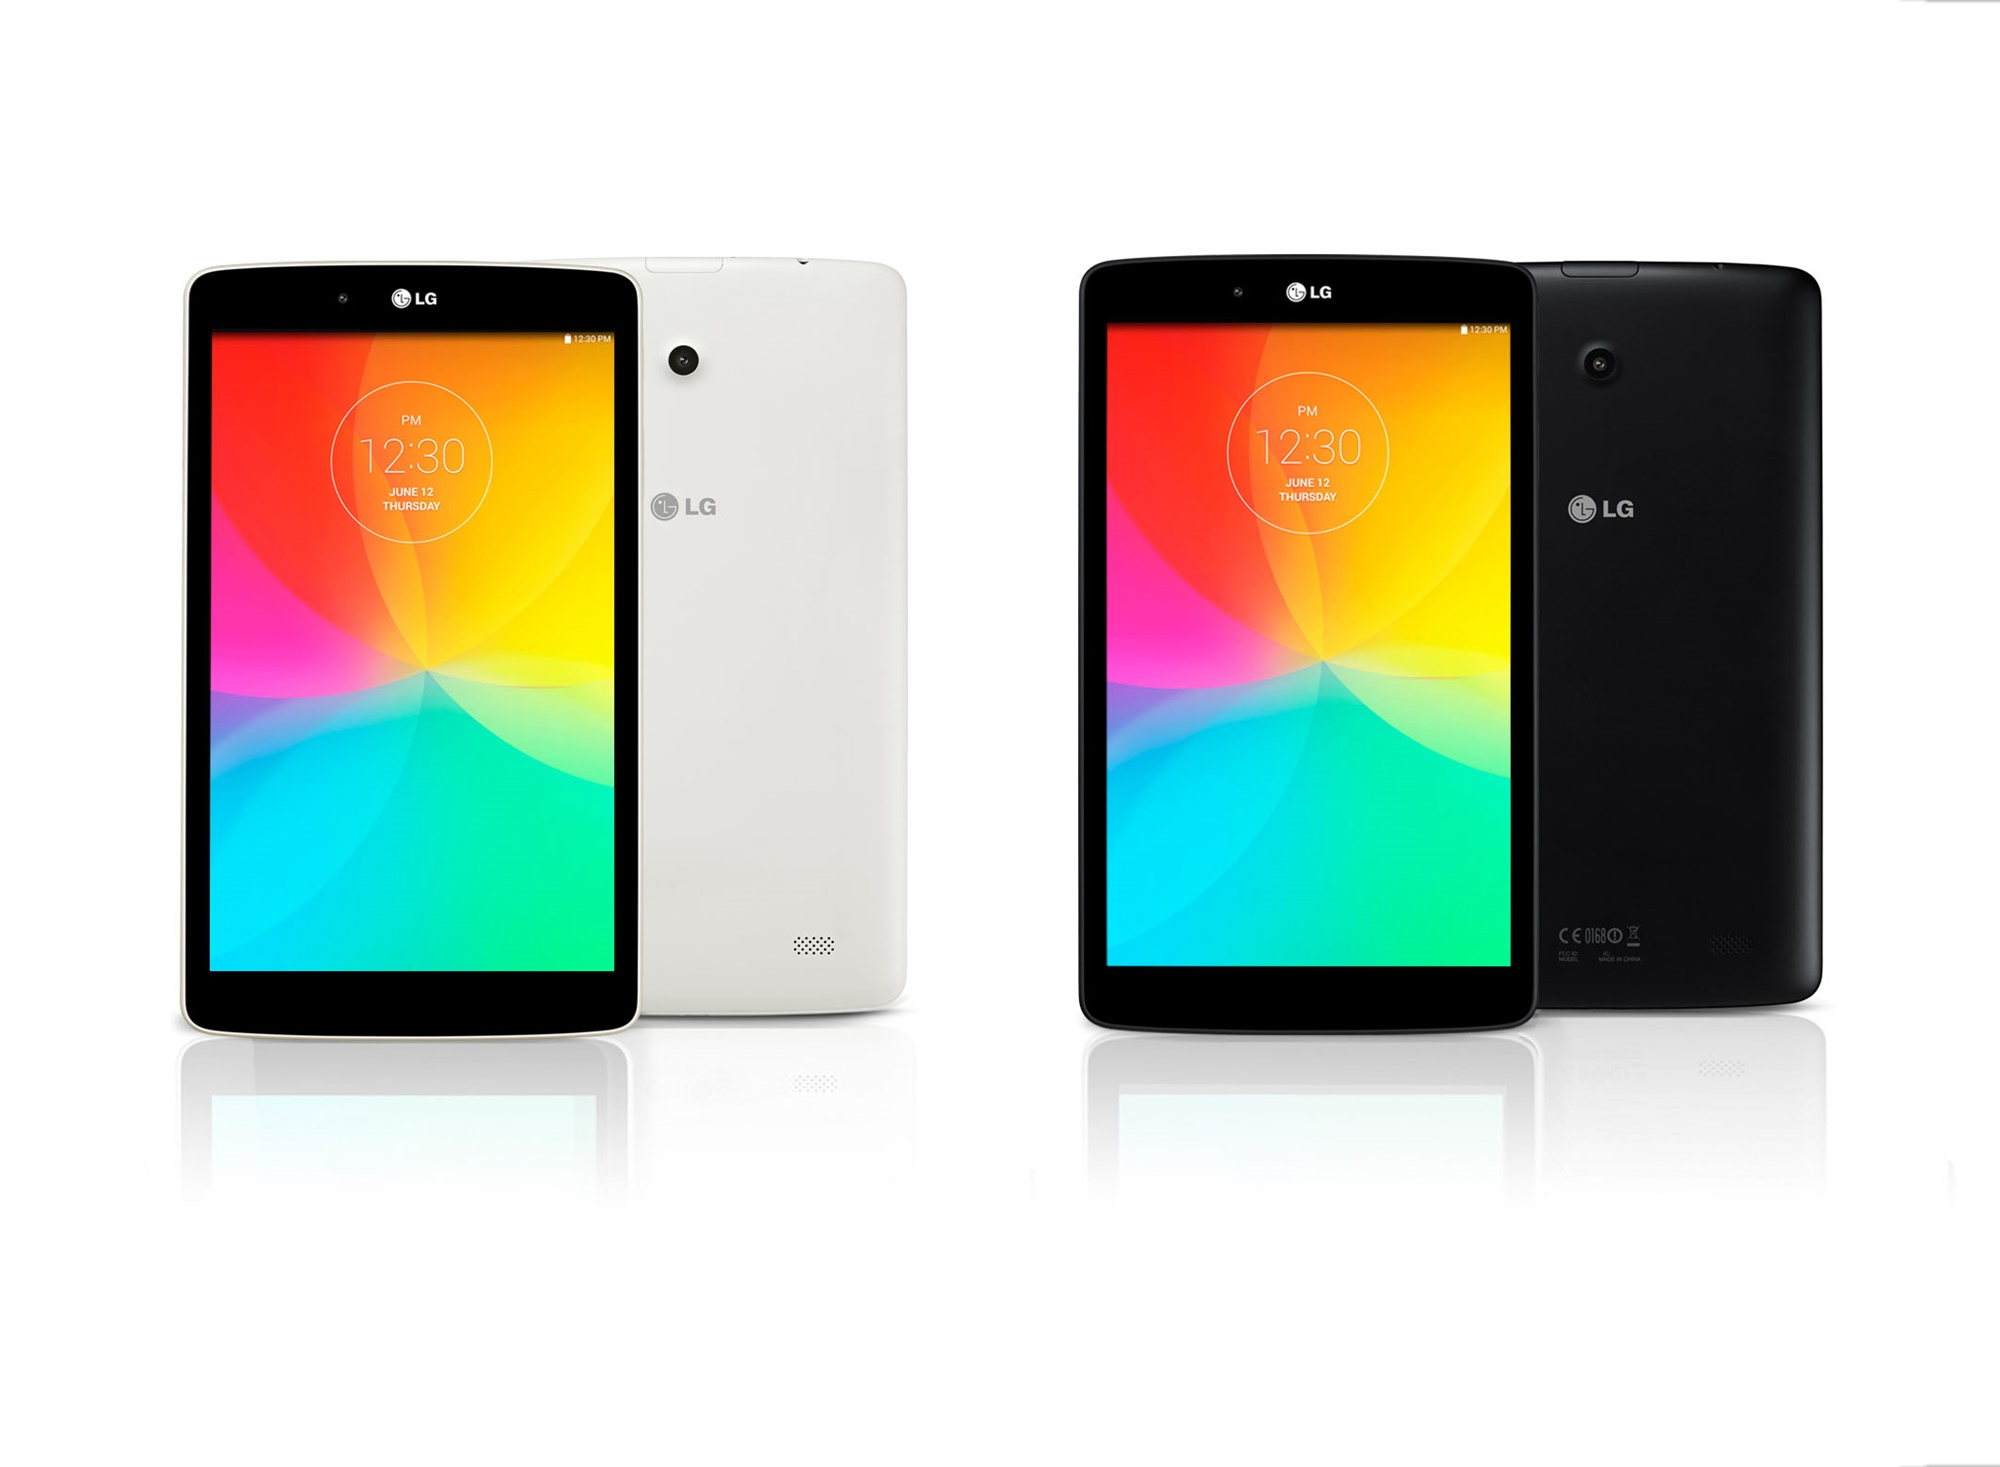 From left to right; A front view and a back view of LG G Pad 8.0 LTE in white color. A front view and a back view of LG G Pad 8.0 LTE in black color.